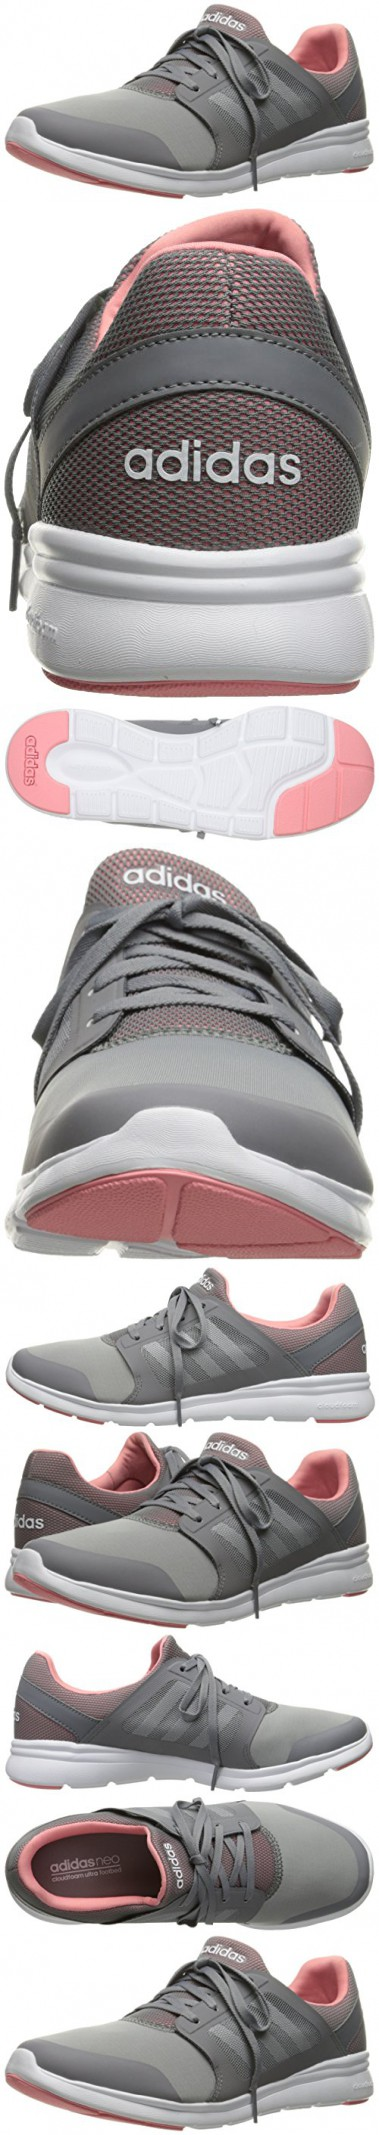 adidas cloudfoam women's grey